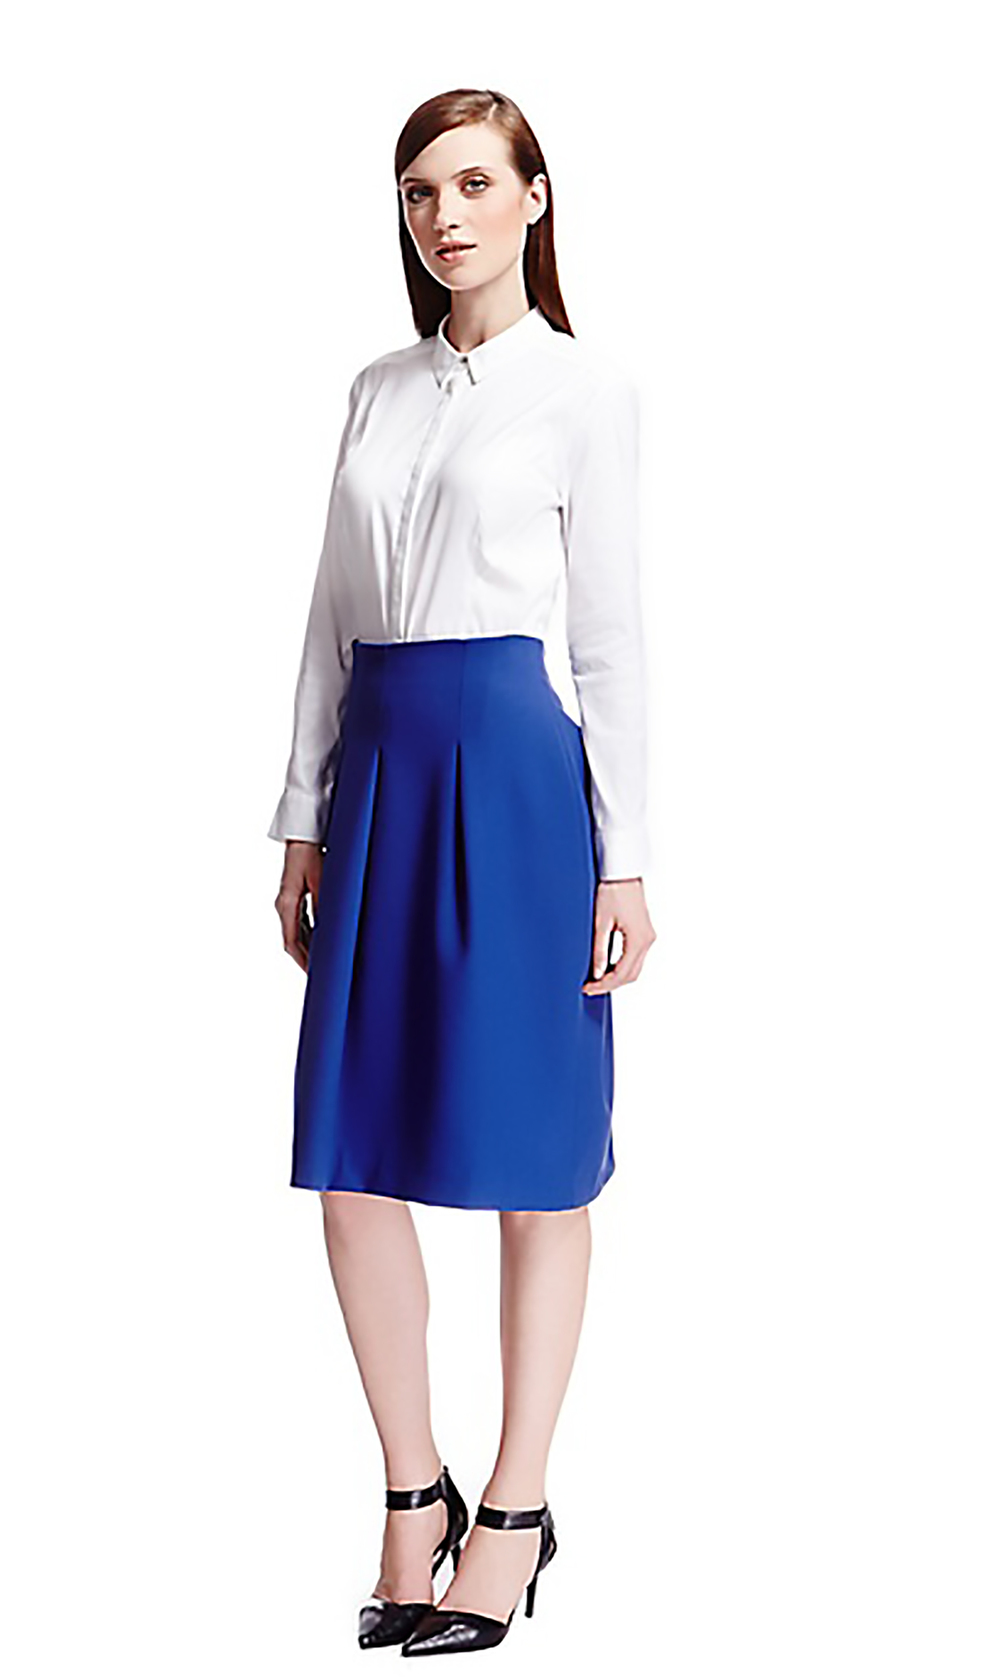 M&S autograph classic collar no peep shirt, knee length pleated skirt, leather pointed toe shoes M&S 1500.jpg